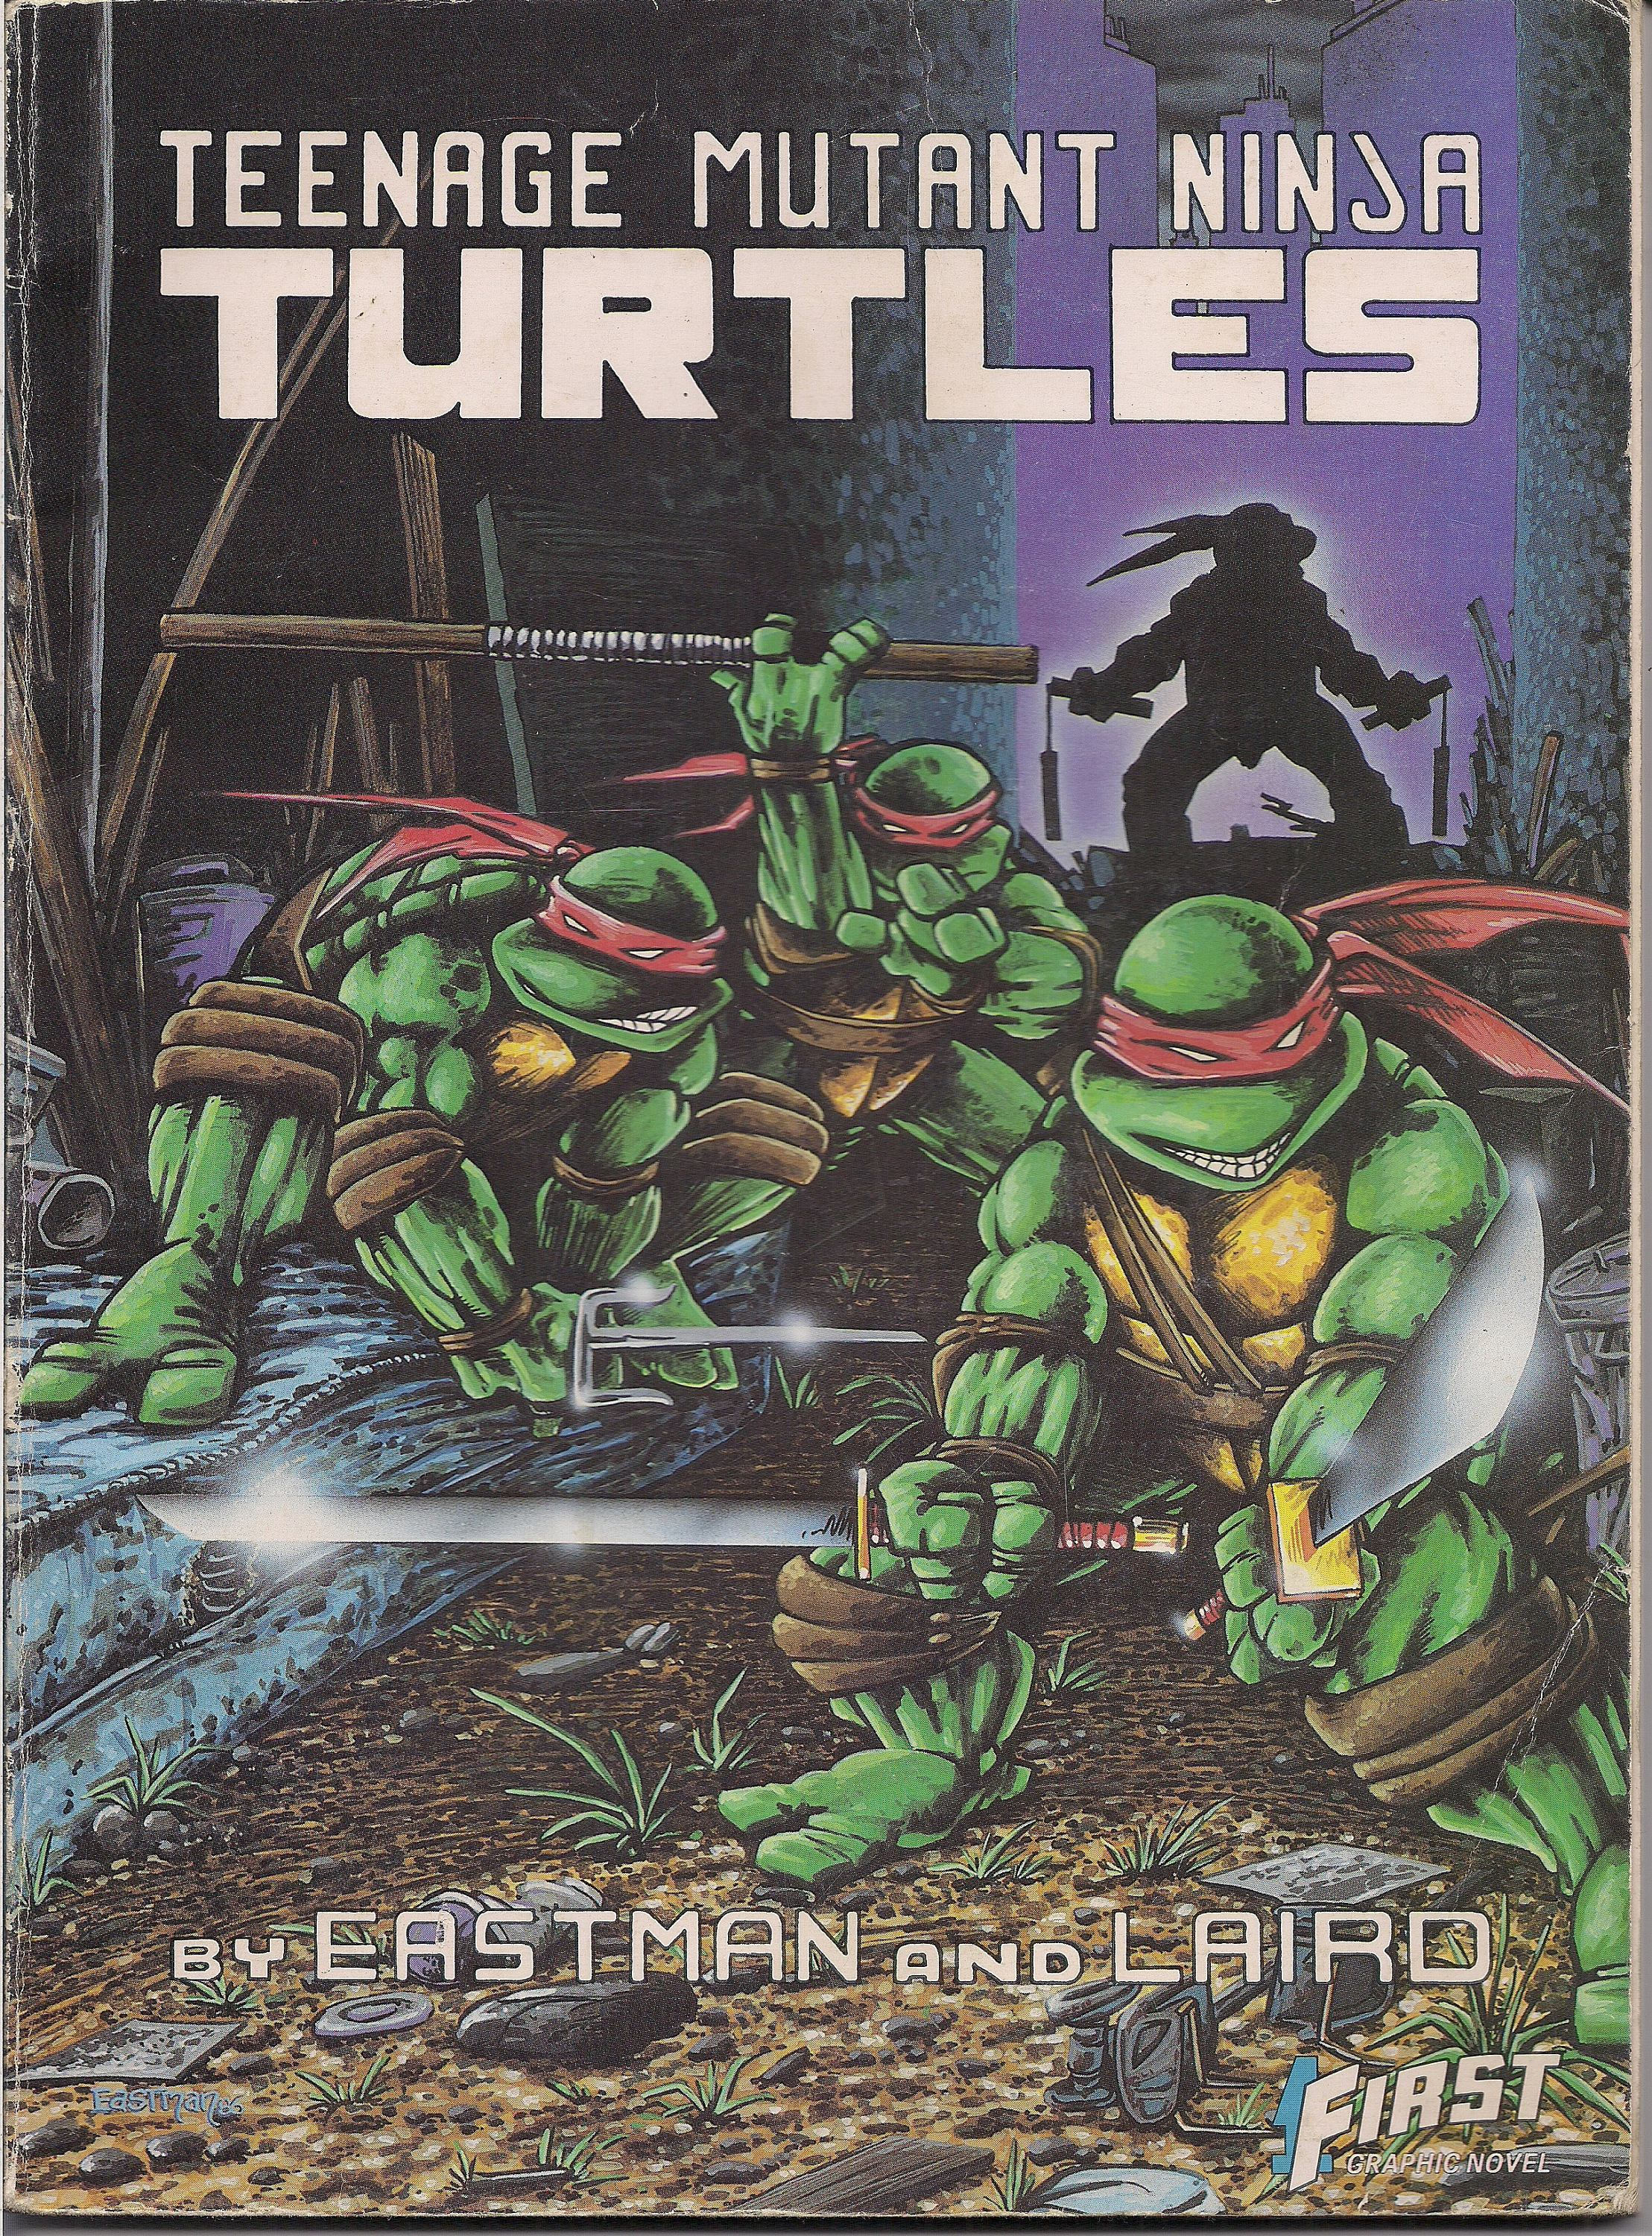 Teenage Mutant Ninja Turtles Original Vintage Poster  Pin Up Comic Books 1989